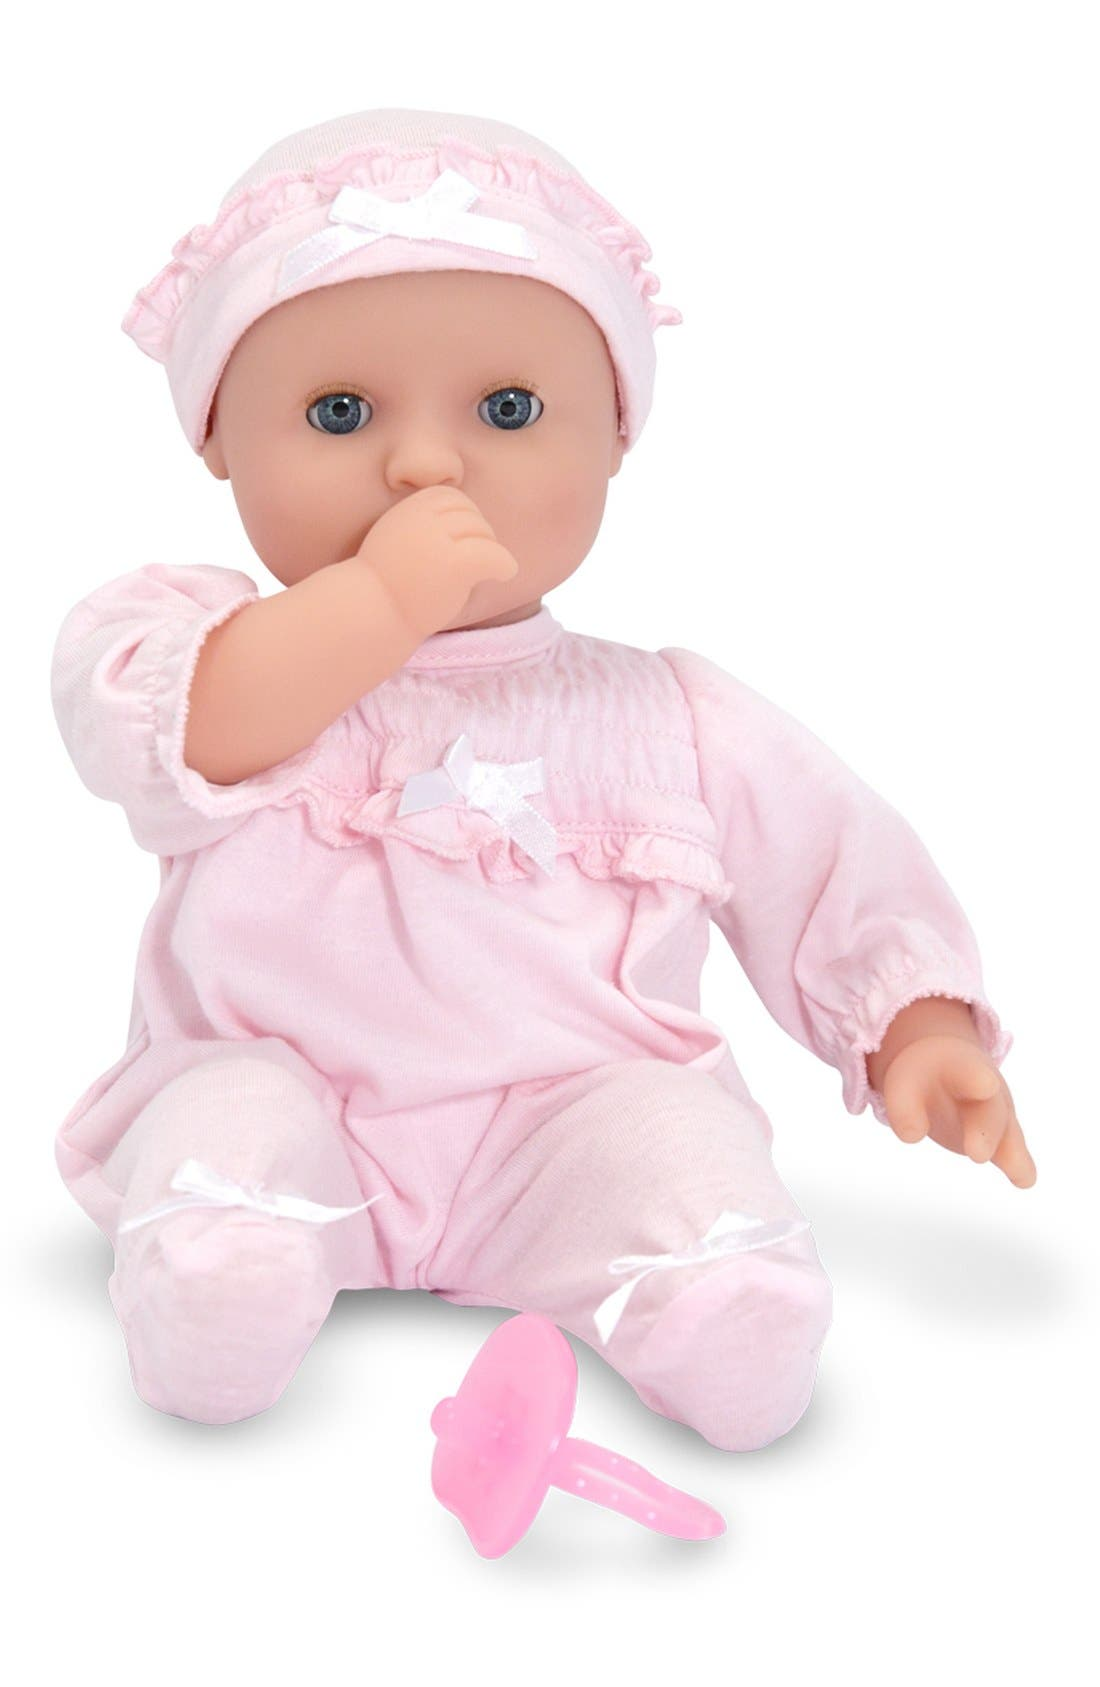 Melissa & Doug 'Mine to Love - Jenna' Baby Doll